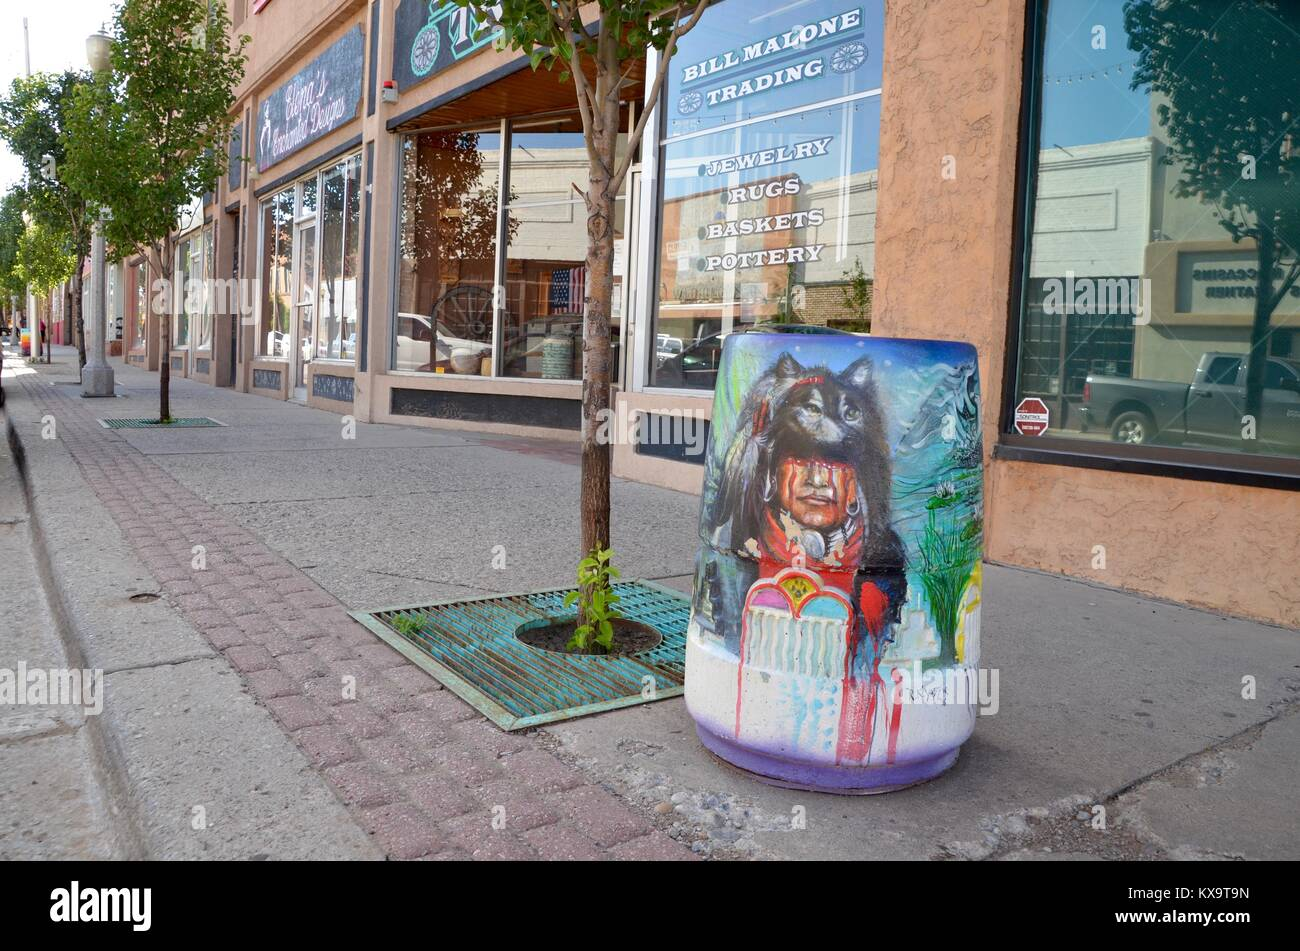 trash cans painted with tribal indian images gallup new mexico - Stock Image